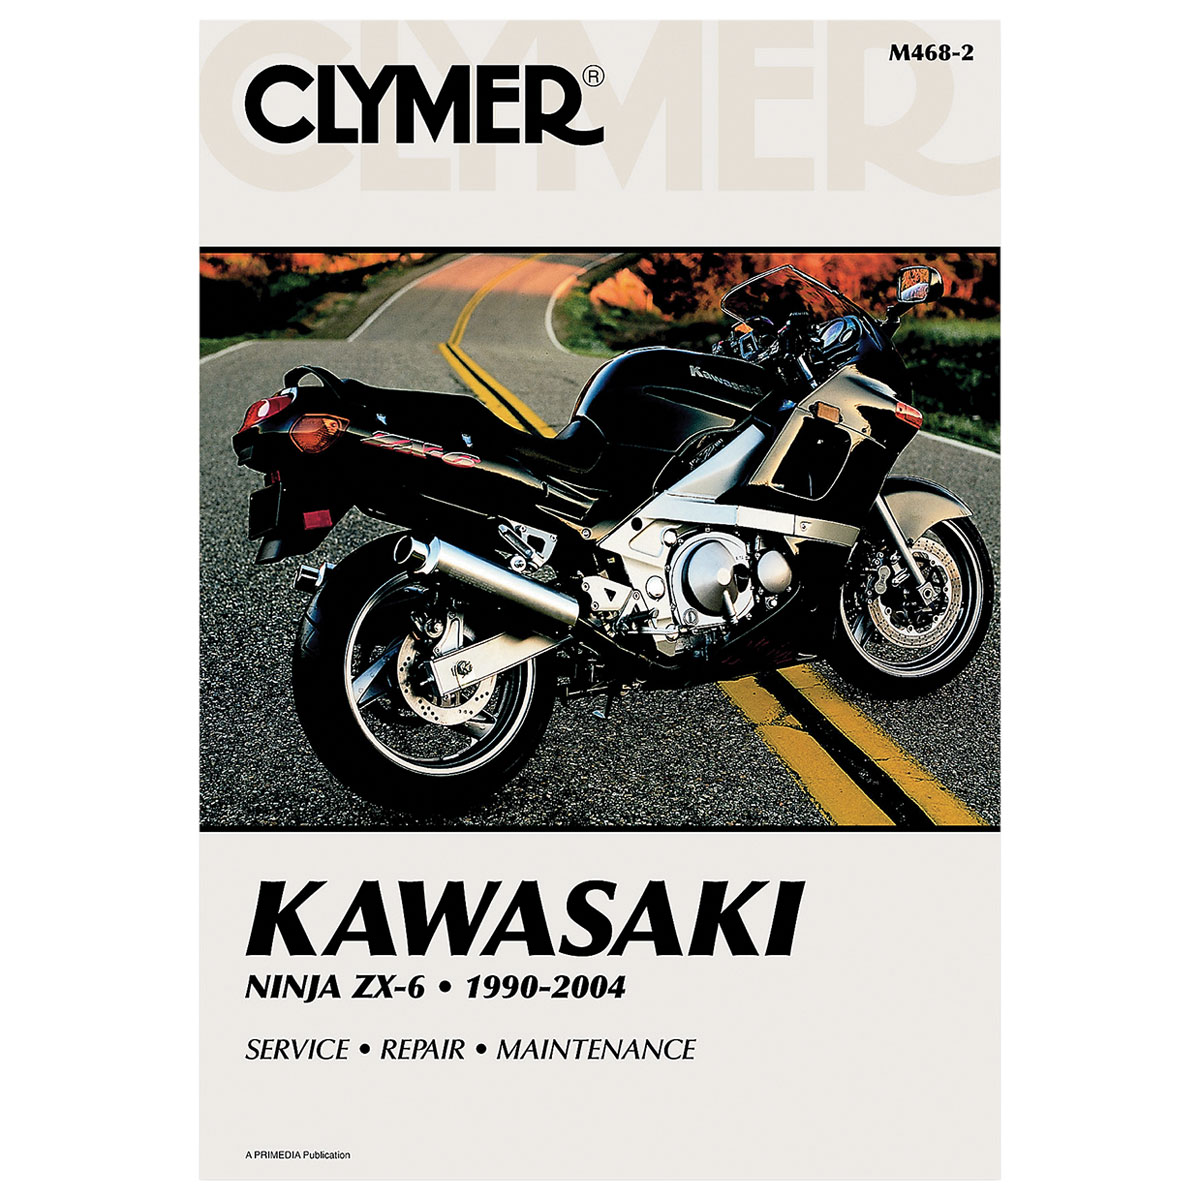 Clymer Kawasaki Motorcycle Repair Manual